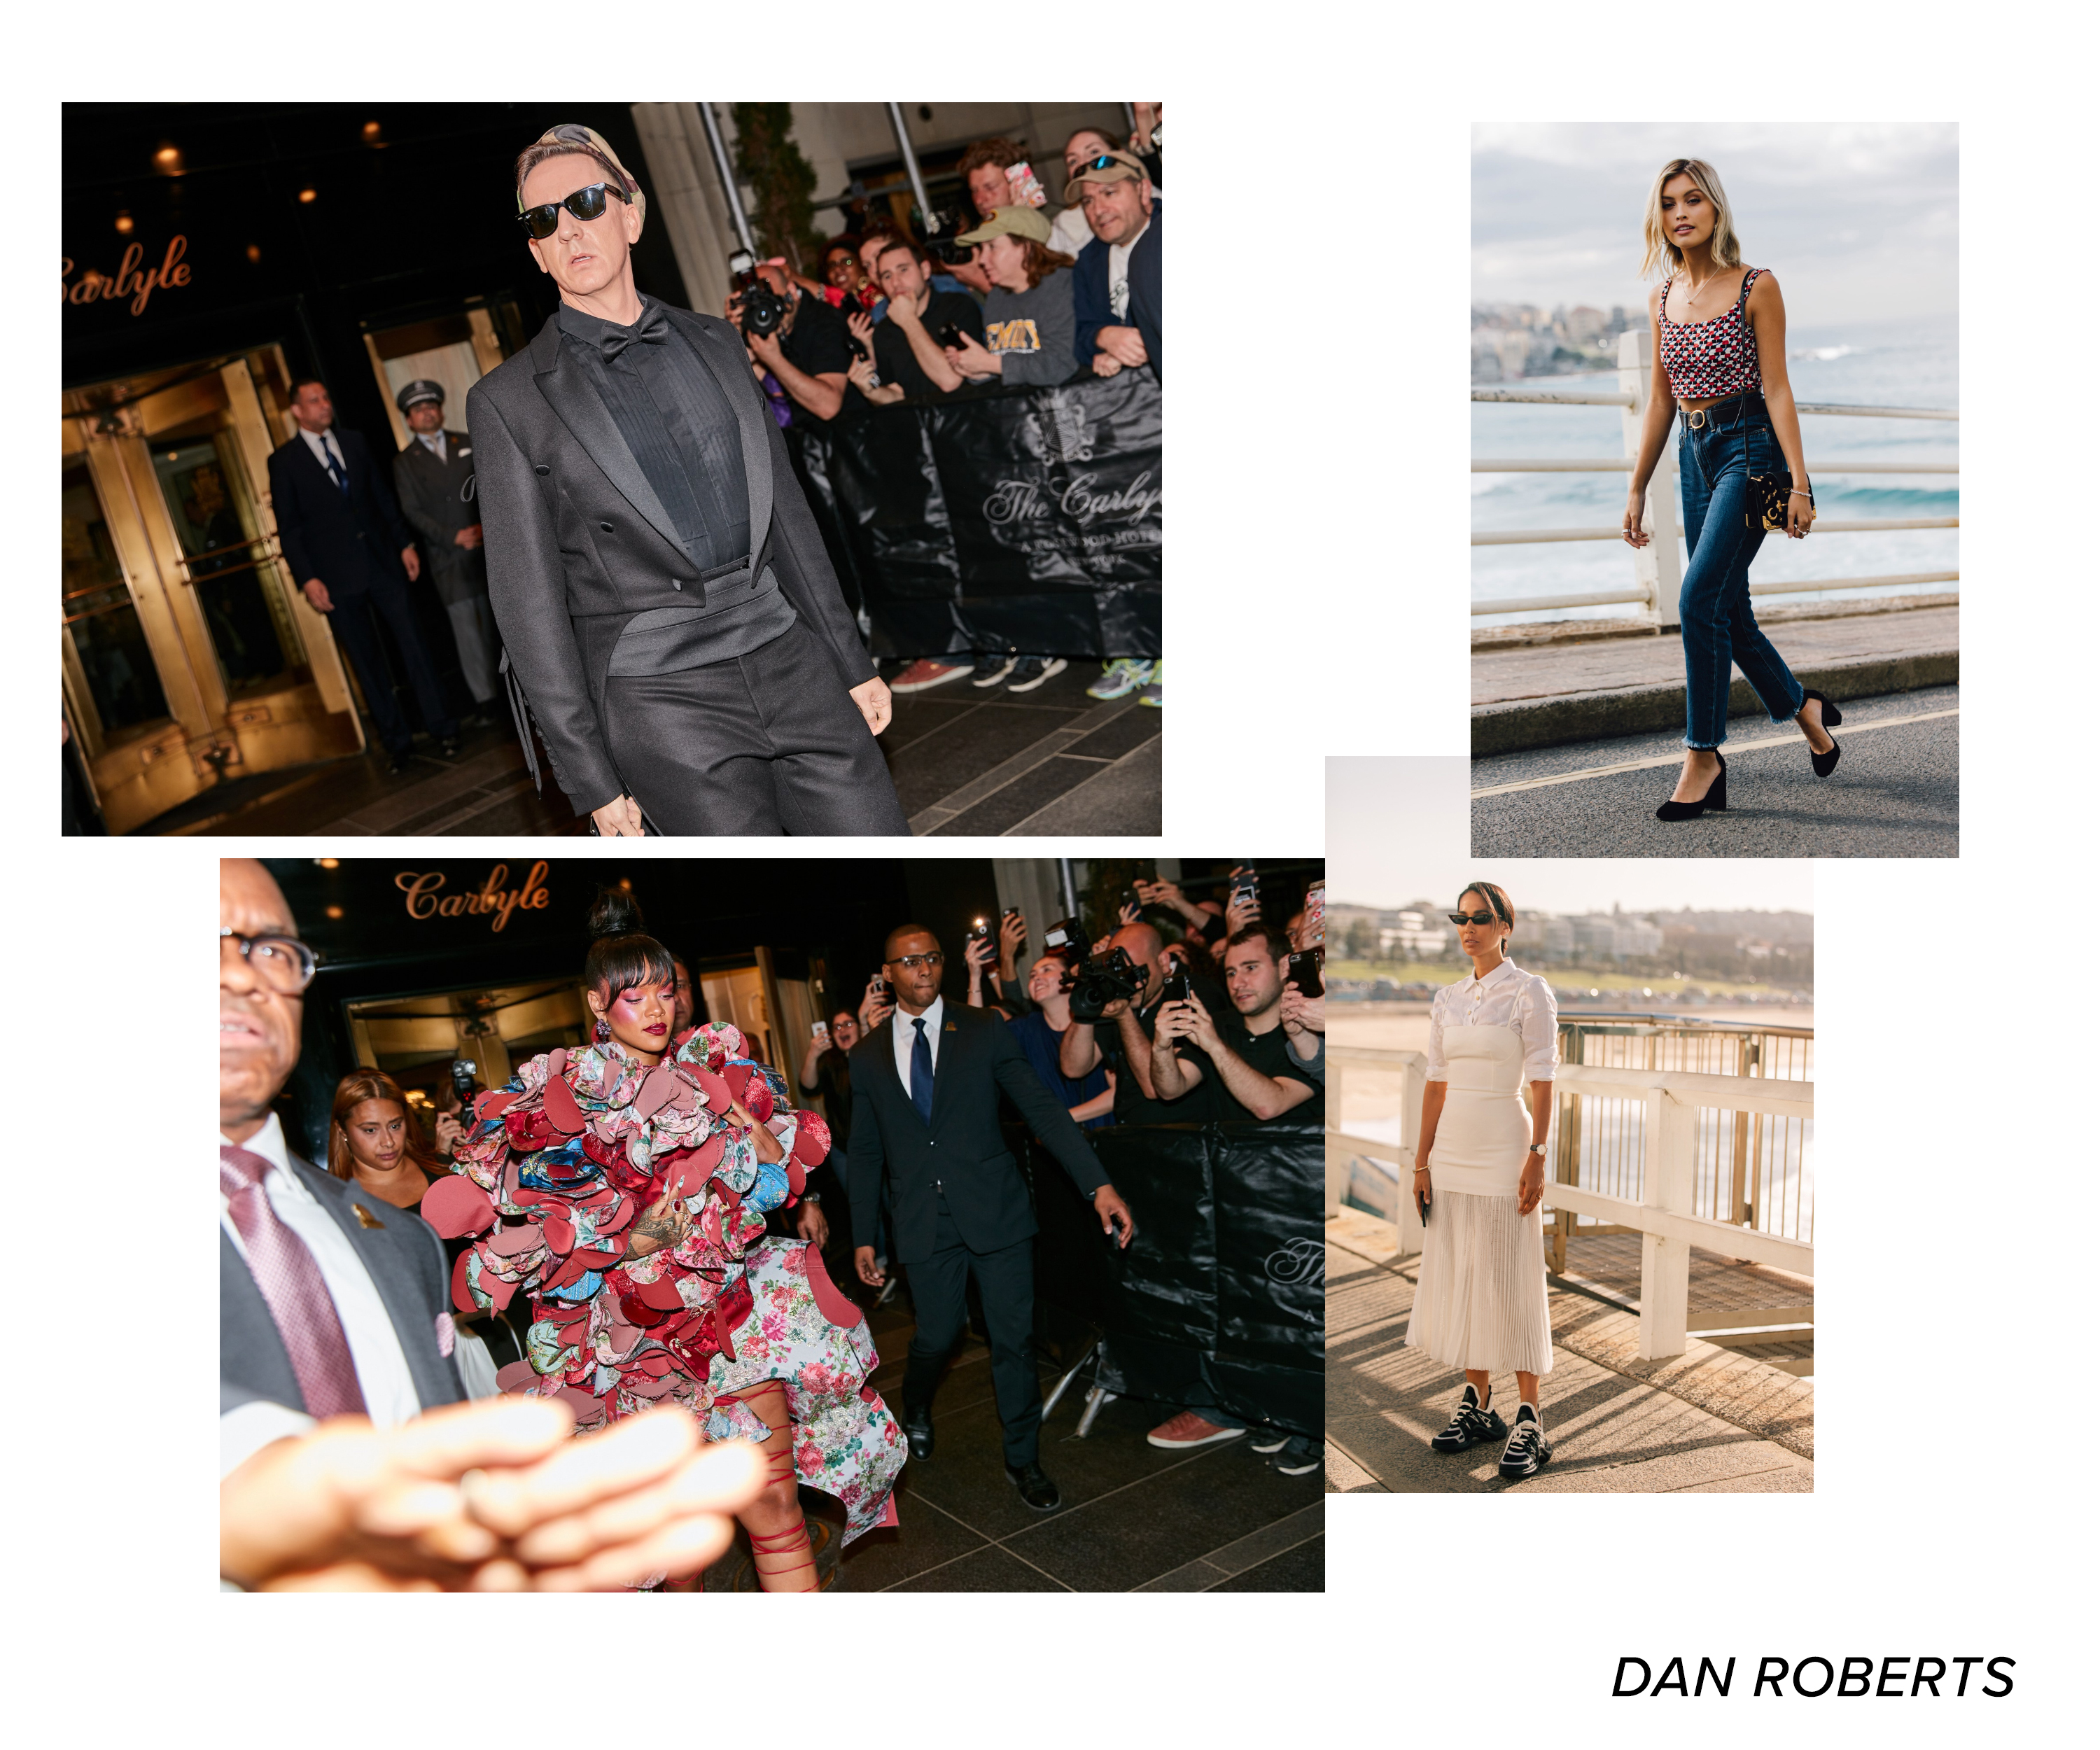 Dan Roberts - Vogue - 19 Photographers Taking Photos of Your Favorite Models and Designers - FilterGrade